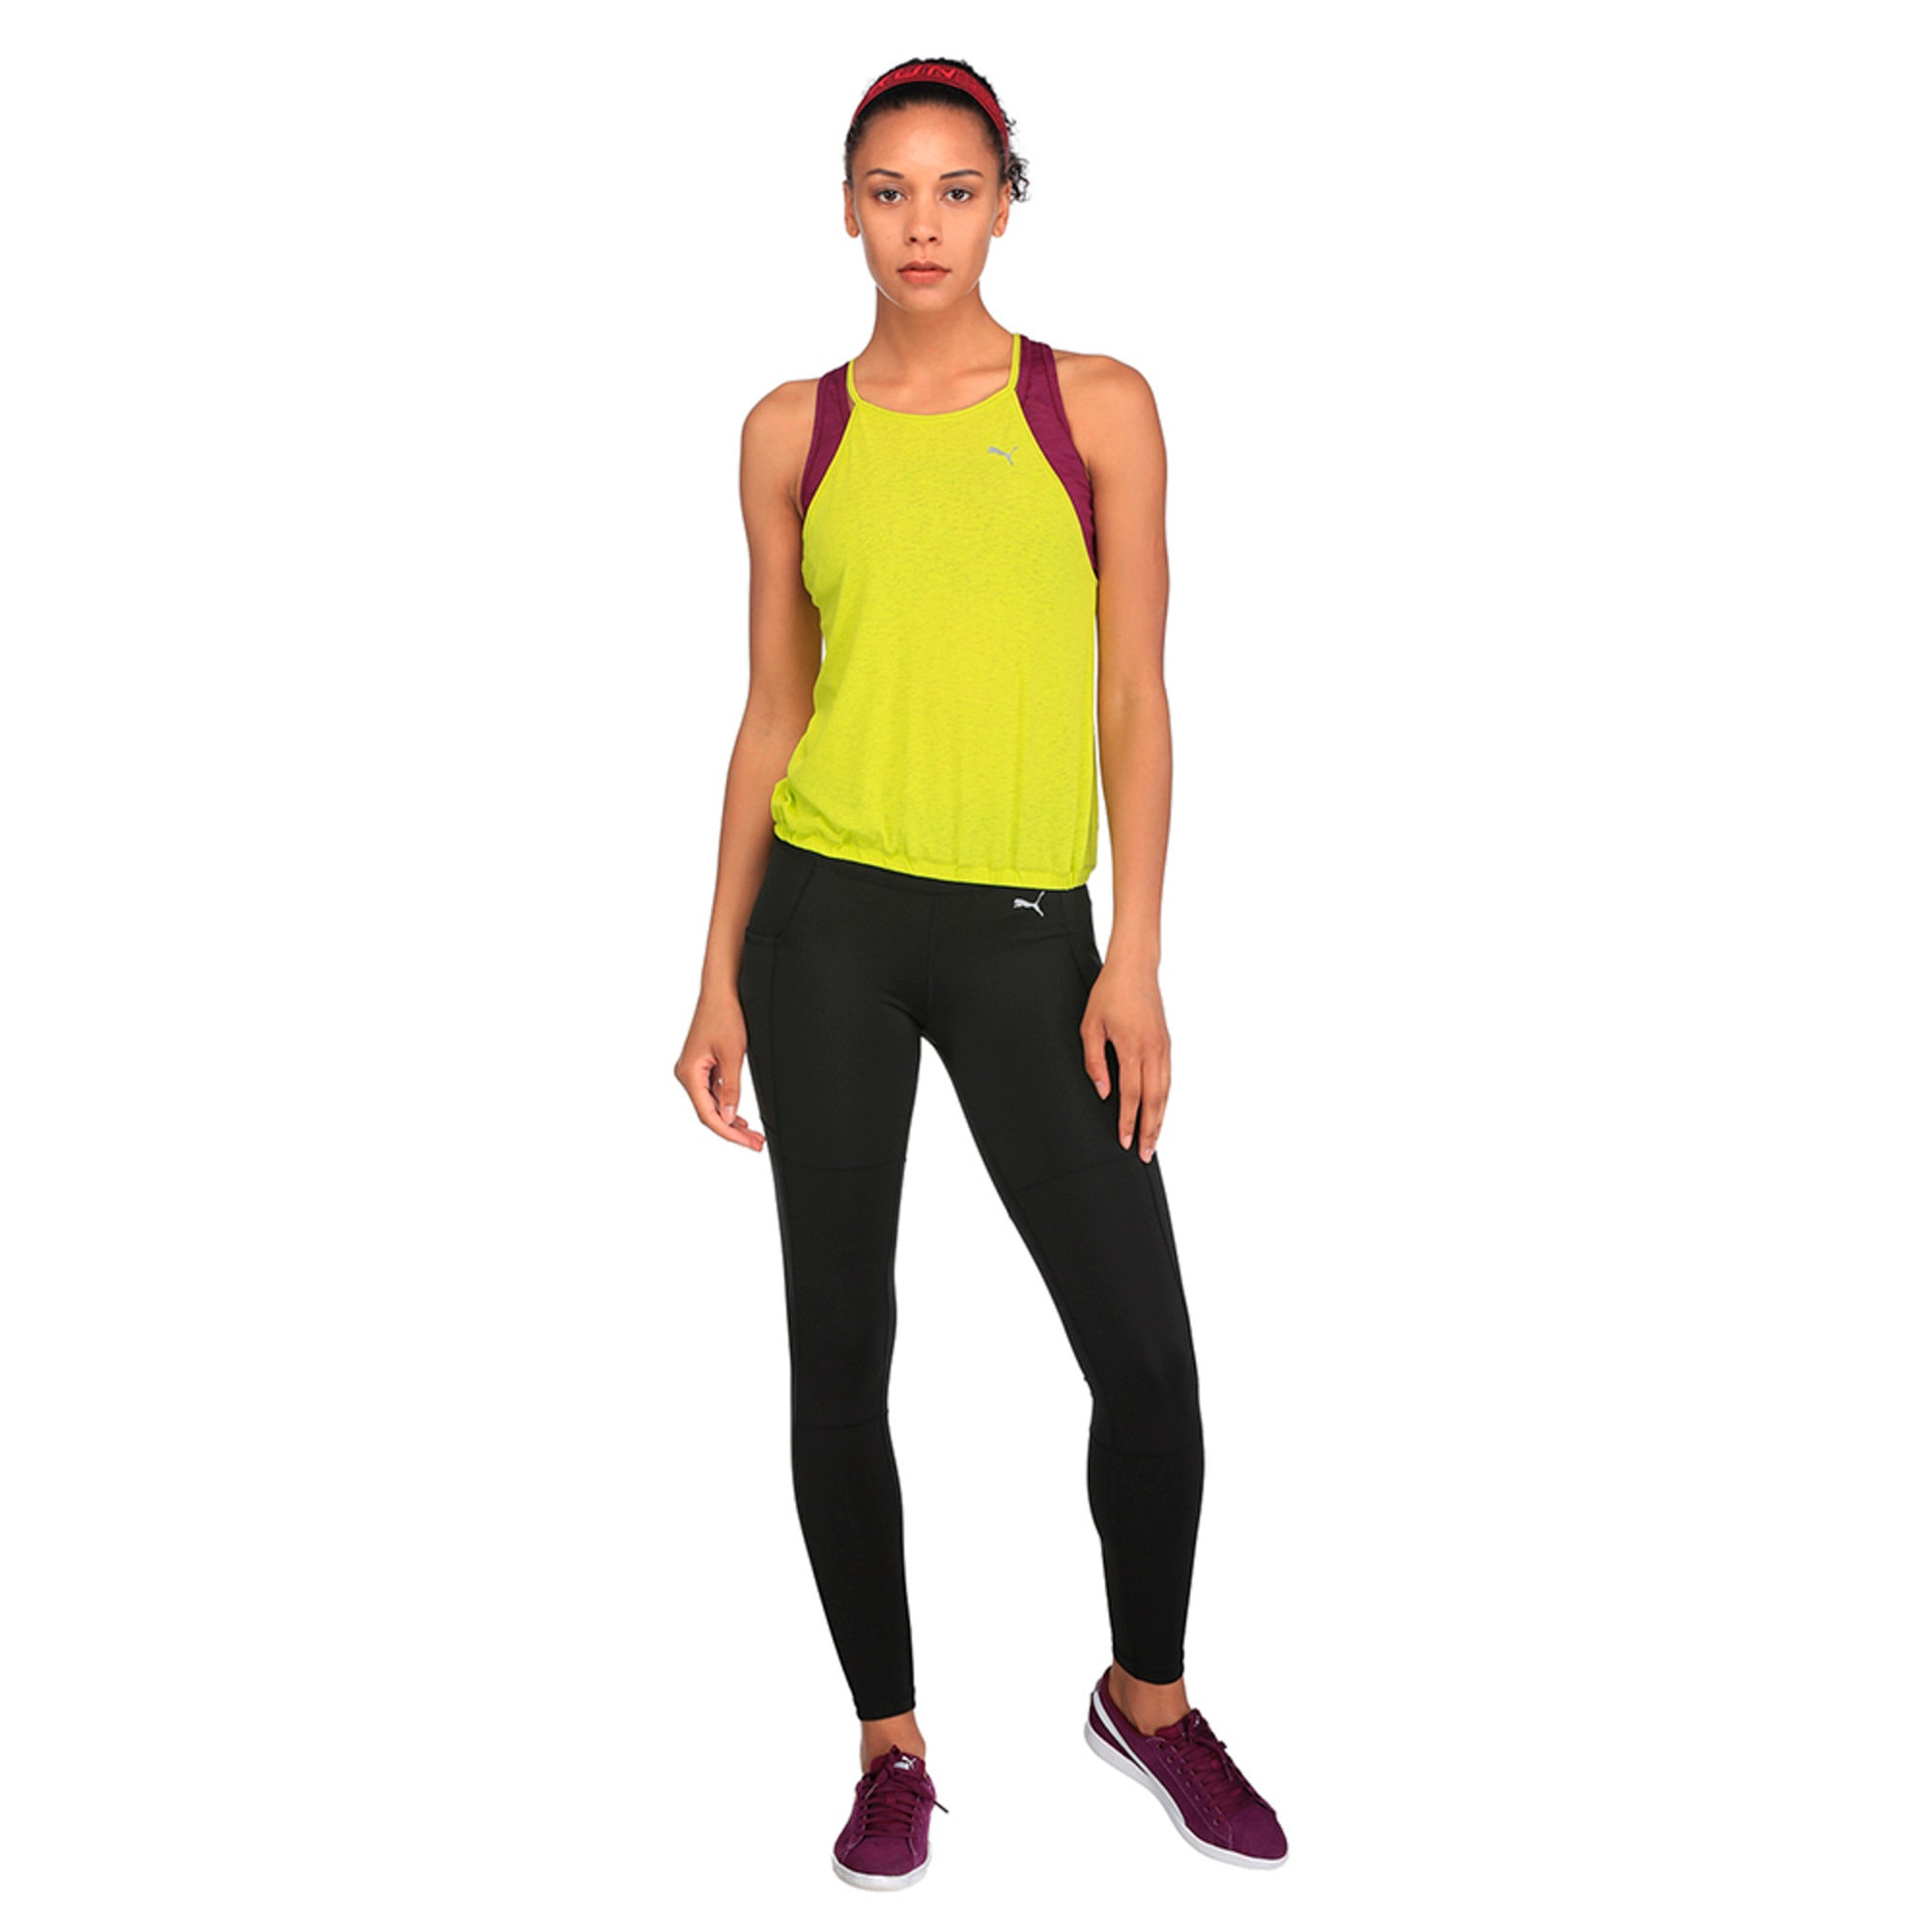 Thumbnail 3 of Active Training Women's Dancer Drapey Solid Tank Top, Nrgy Yellow, medium-IND